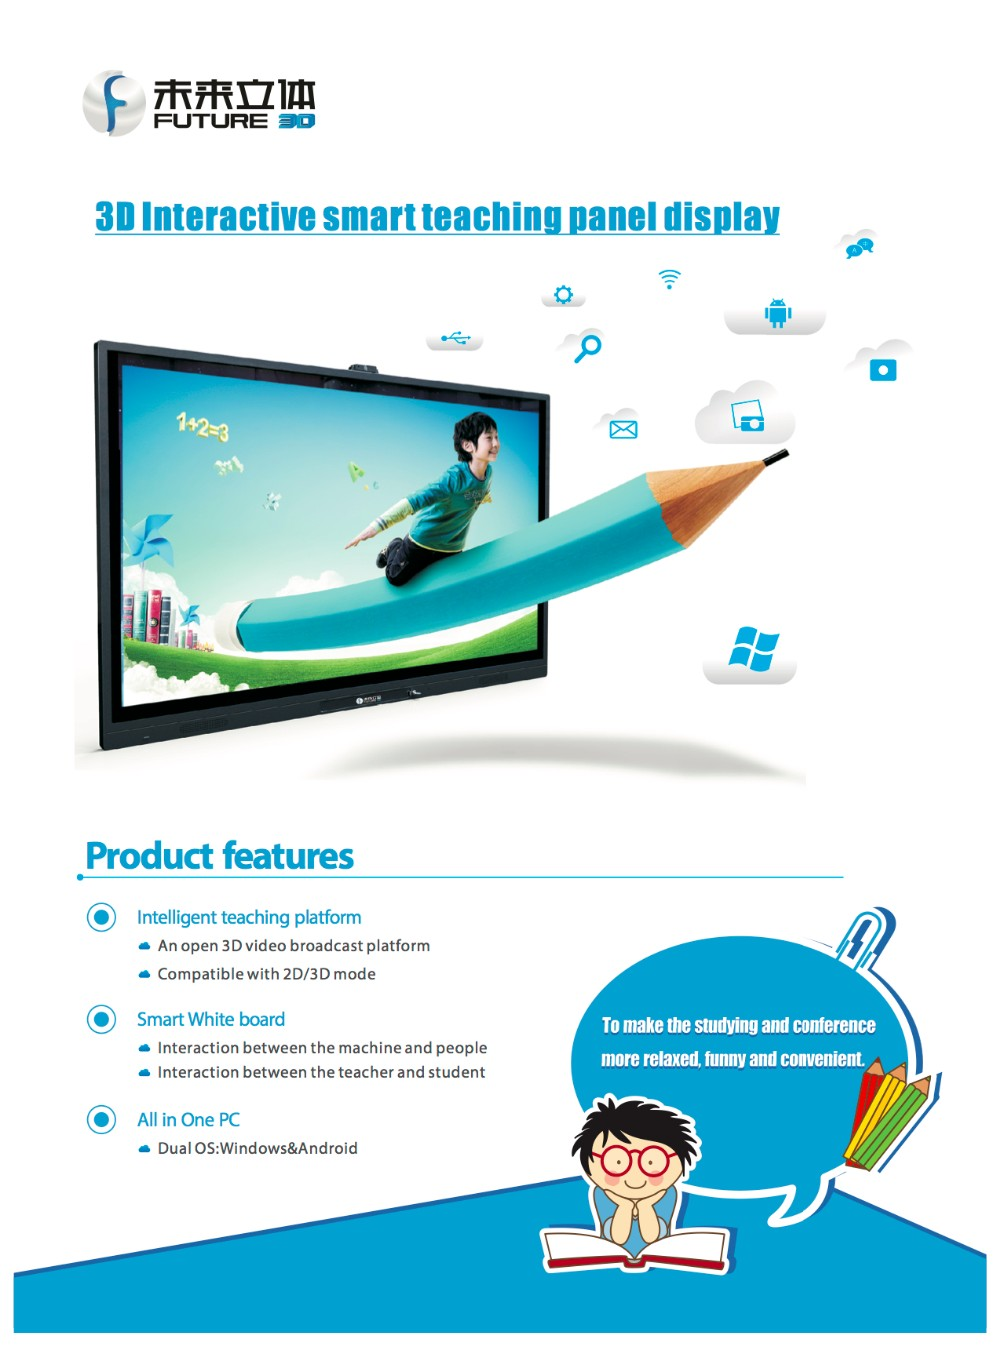 All in One Interactive 3D multi-touch screen smart whiteboard